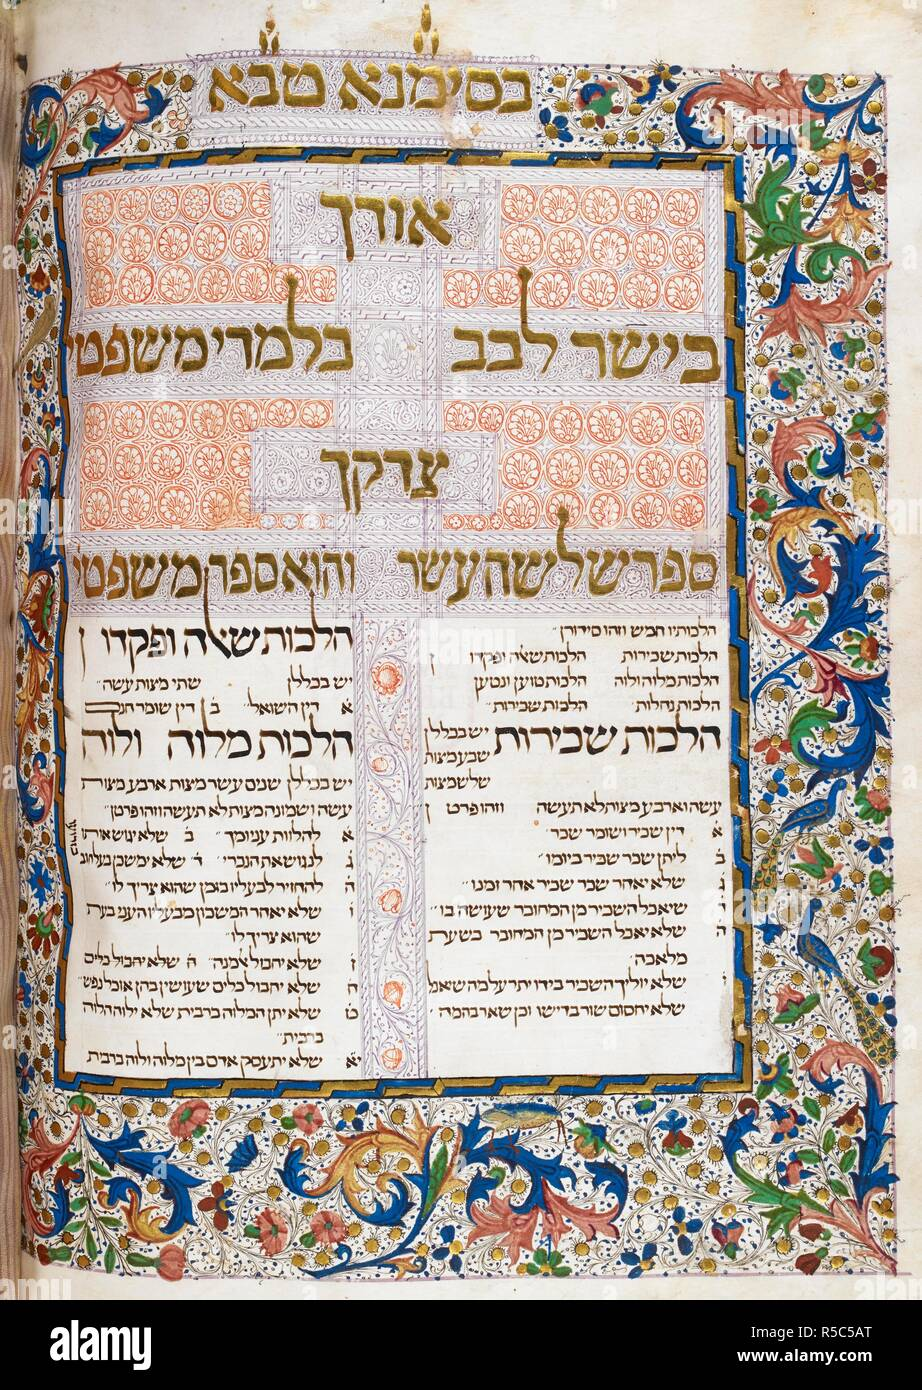 Decorated initial-word panel with gold and penwork, at the beginning of the thirteenth book, the Book of Civil Law (Sefer Mishpatim) with a full foliate border inhabited by birds. Lisbon Mishneh Torah, volume 2. Portugal (Lisbon); 1471-1472. Source: Harley 5699, f.355v. Language: Hebrew. - Stock Image